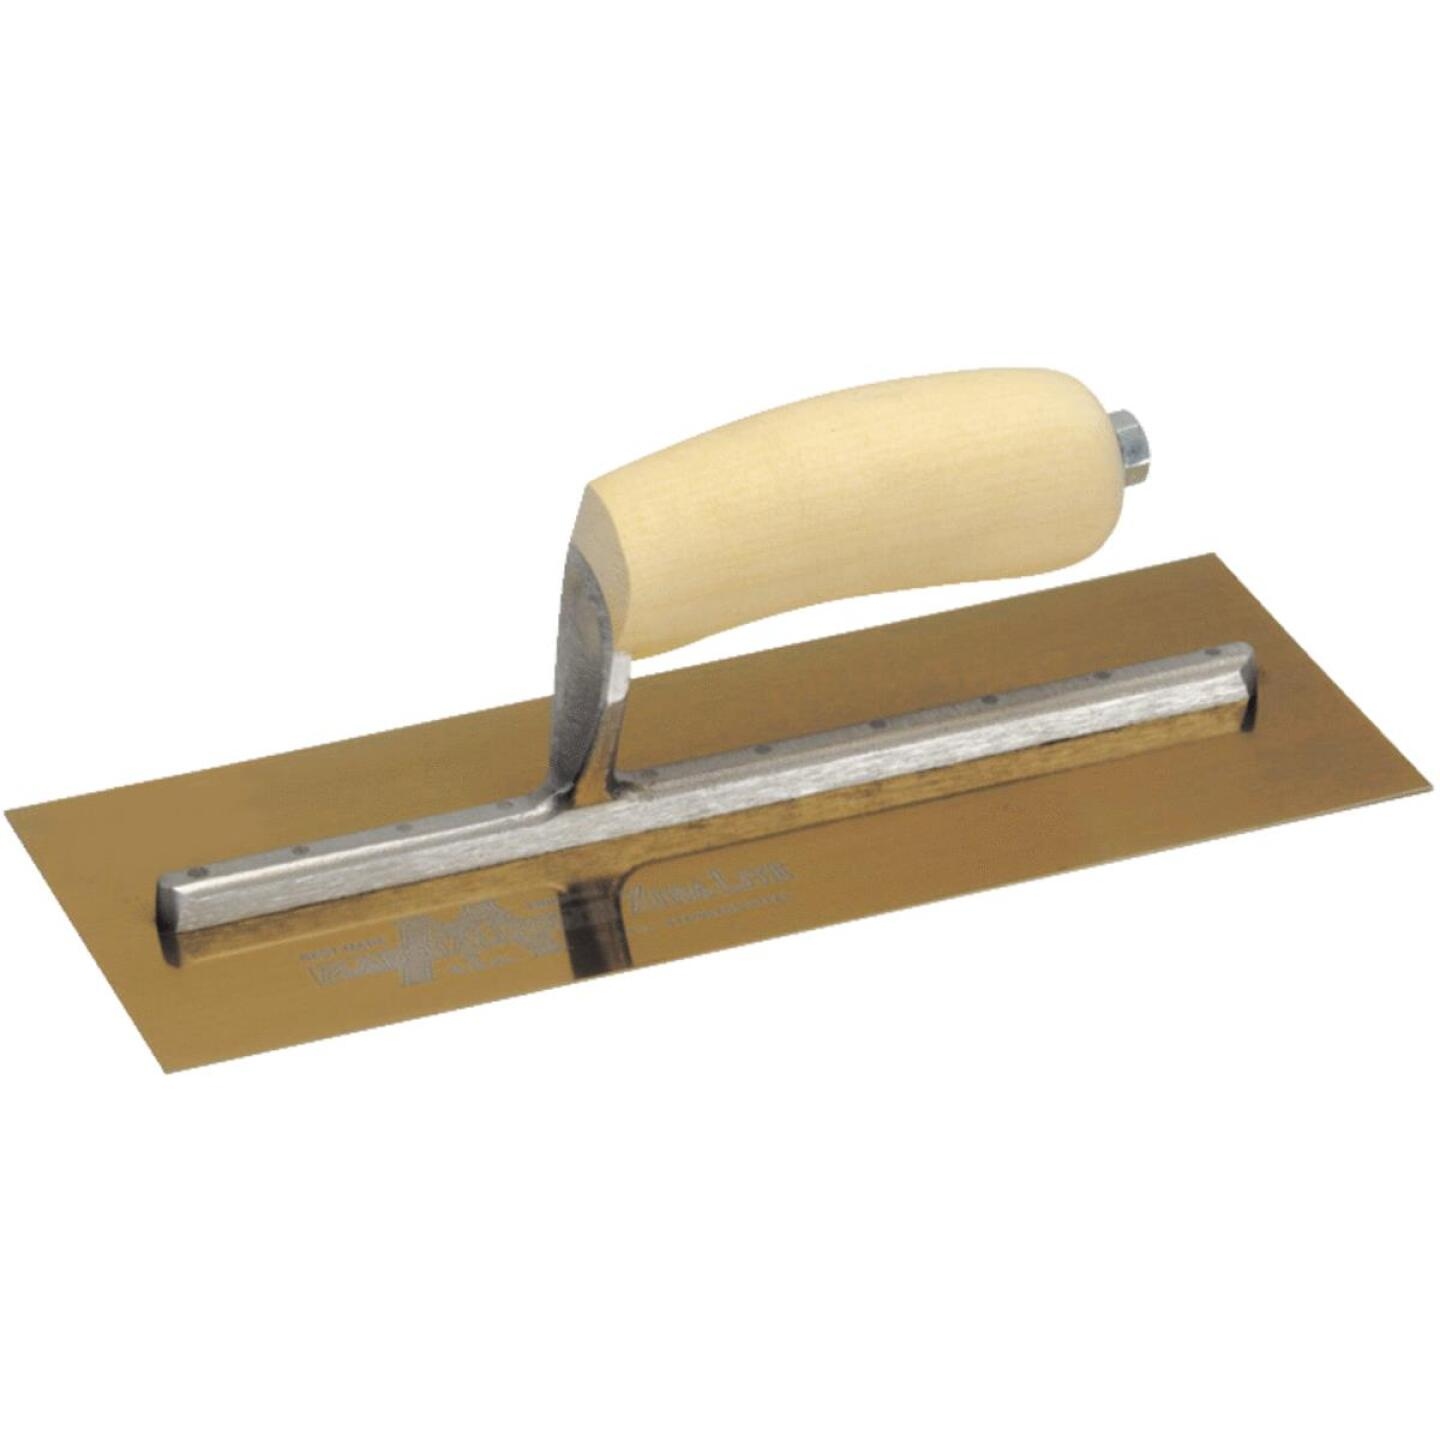 Marshalltown 4-1/2 In. x 11 In. Golden Stainless Steel Finishing Trowel with Curved Wood Handle Image 1